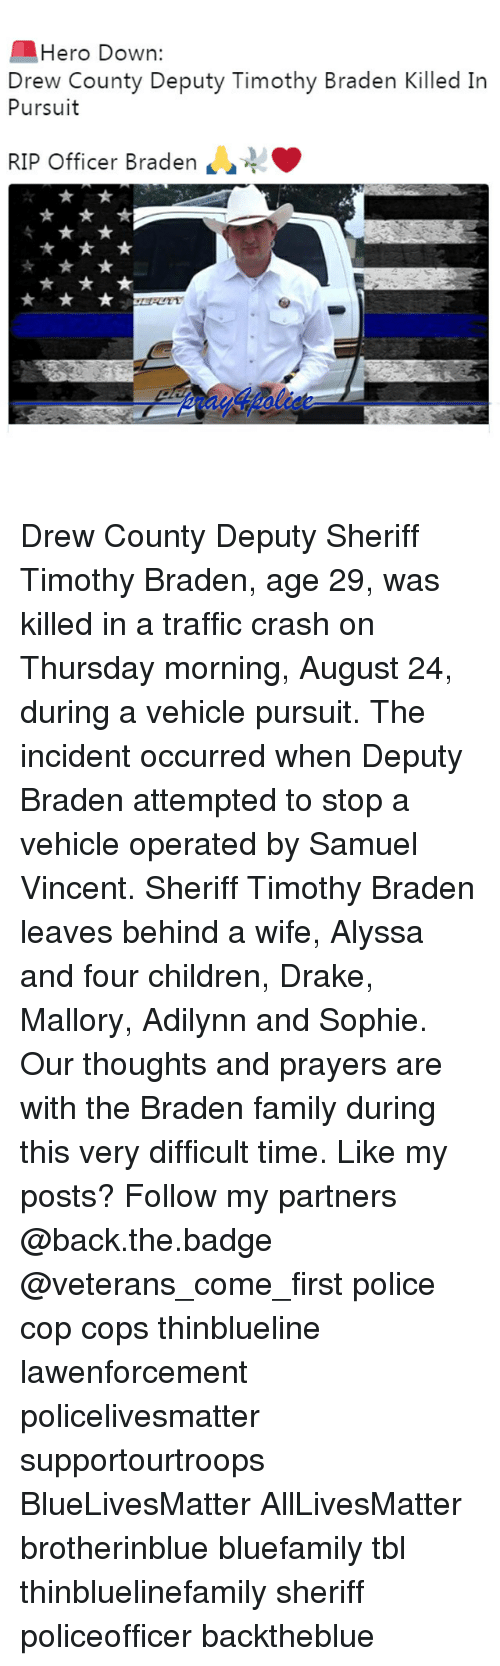 Draked: Hero Down:  Drew County Deputy Timothy Braden Killed In  Pursuit  RIP Officer Braden  4 Drew County Deputy Sheriff Timothy Braden, age 29, was killed in a traffic crash on Thursday morning, August 24, during a vehicle pursuit. The incident occurred when Deputy Braden attempted to stop a vehicle operated by Samuel Vincent. Sheriff Timothy Braden leaves behind a wife, Alyssa and four children, Drake, Mallory, Adilynn and Sophie. Our thoughts and prayers are with the Braden family during this very difficult time. Like my posts? Follow my partners @back.the.badge @veterans_сome_first police cop cops thinblueline lawenforcement policelivesmatter supportourtroops BlueLivesMatter AllLivesMatter brotherinblue bluefamily tbl thinbluelinefamily sheriff policeofficer backtheblue